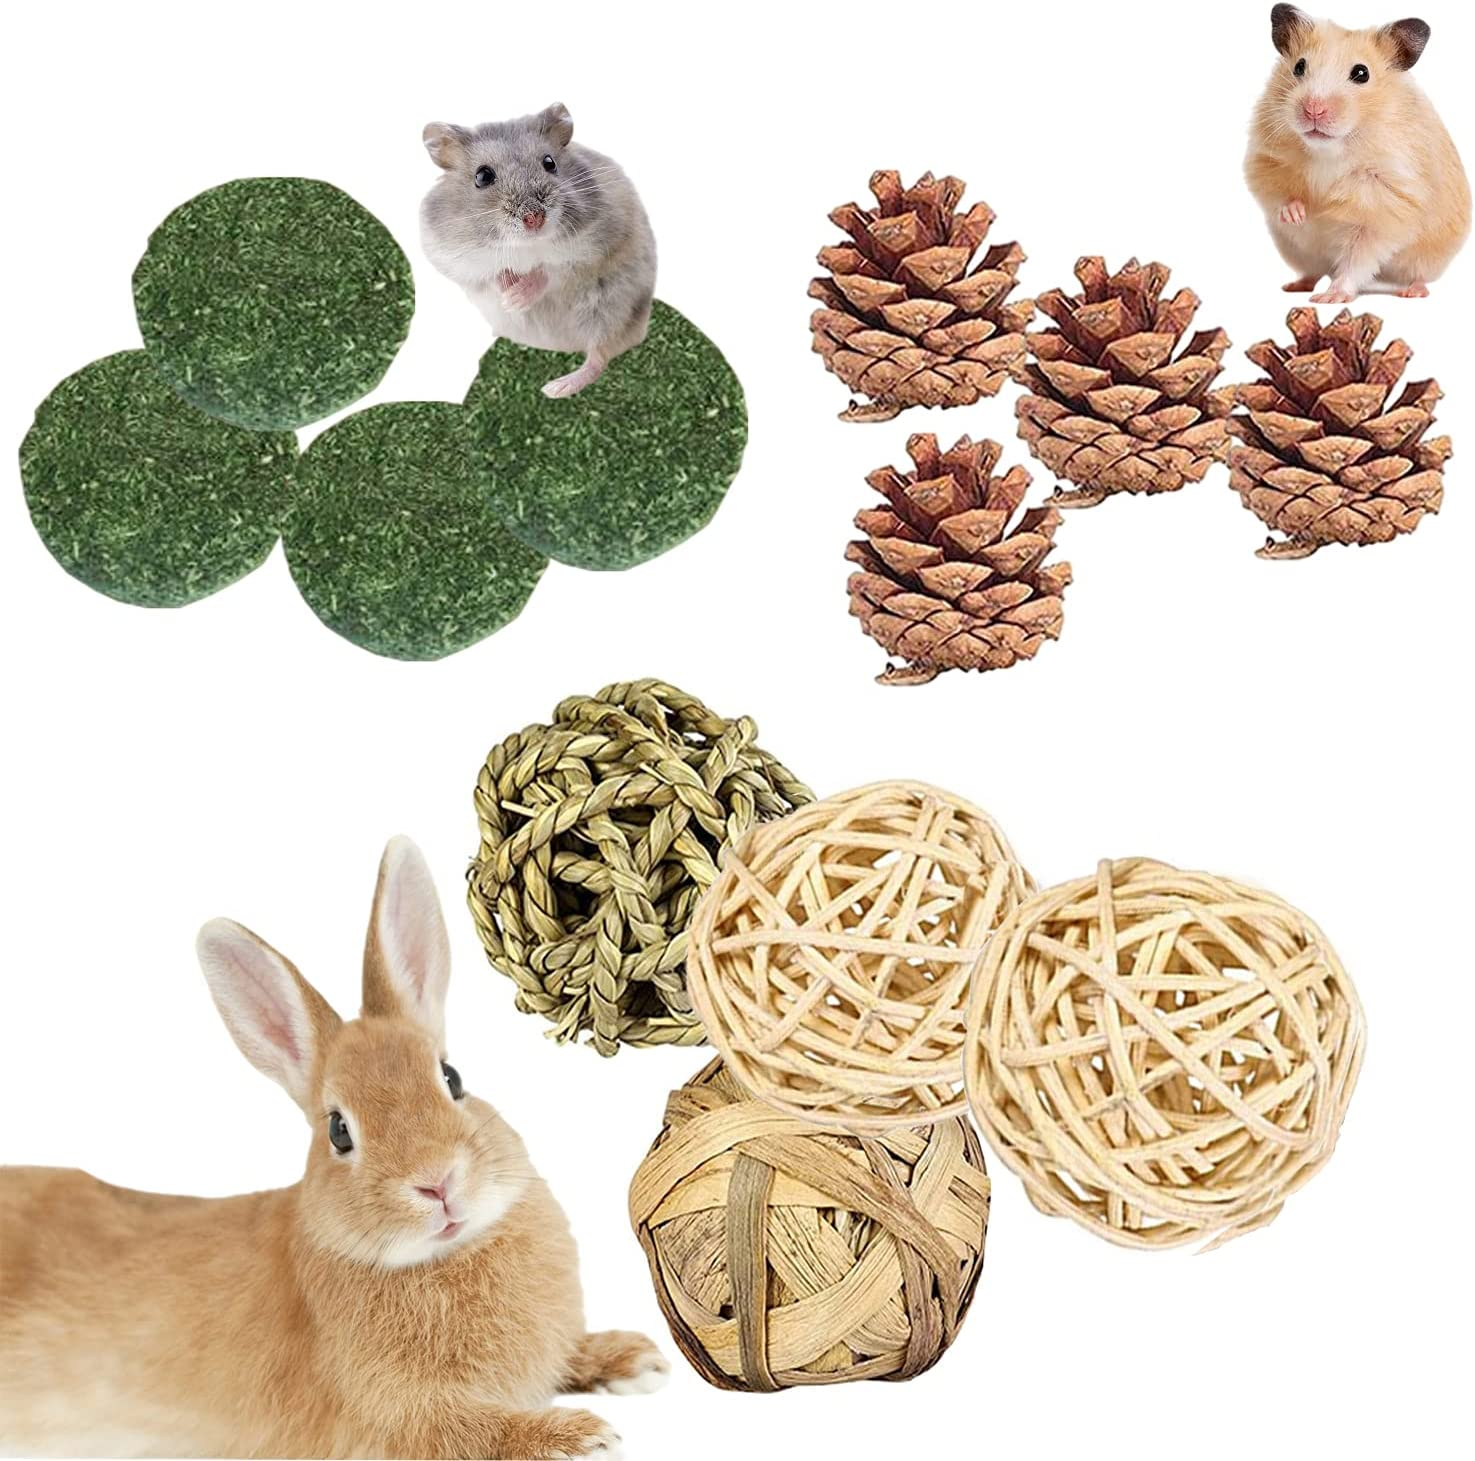 Buy QHZAHNG Bunny Chew Toys, 20pcs Hamster Chew Toys,Natural ...